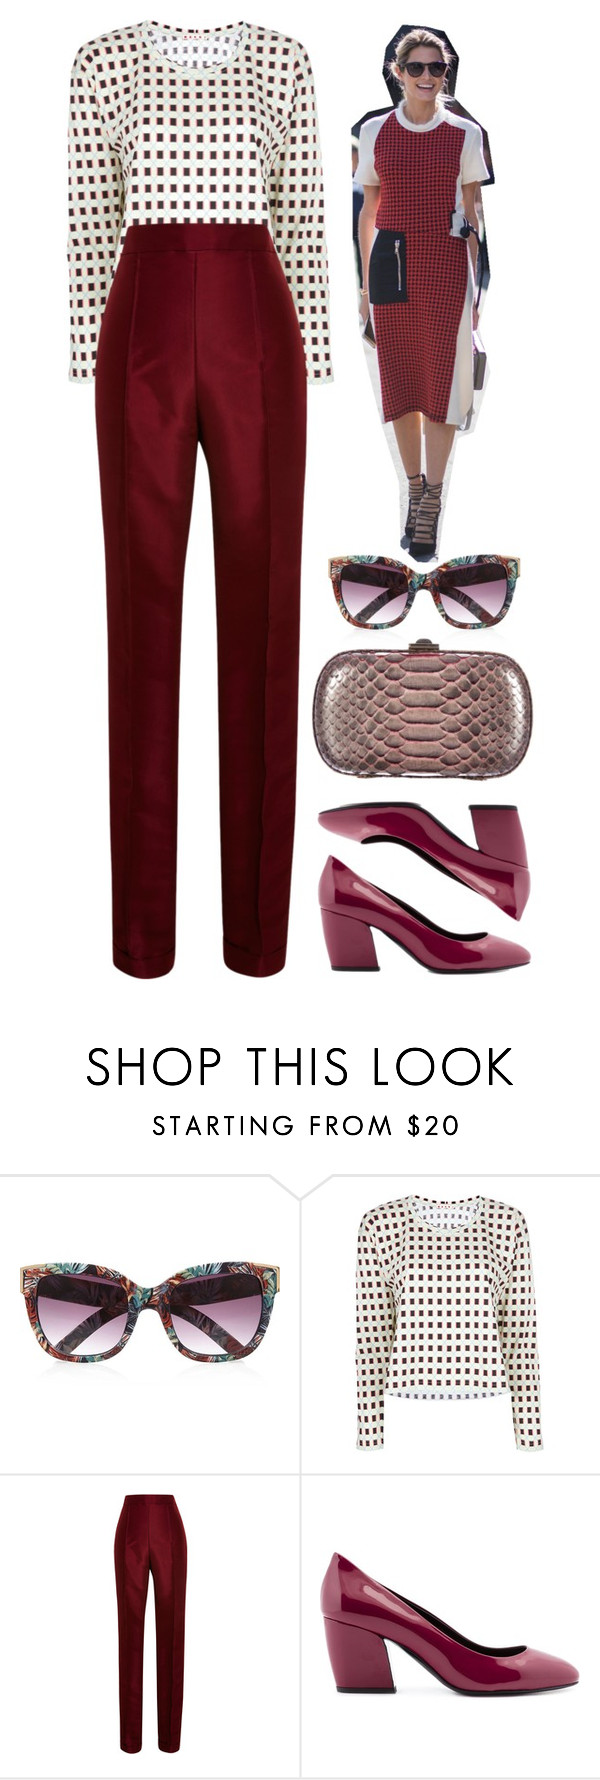 """""""Carmine"""" by cherieaustin on Polyvore featuring River Island, Marni, Rosie Assoulin, Pierre Hardy, Kara Ross, RiverIsland, karaross, marni, PierreHardy and RosieAssoulin"""